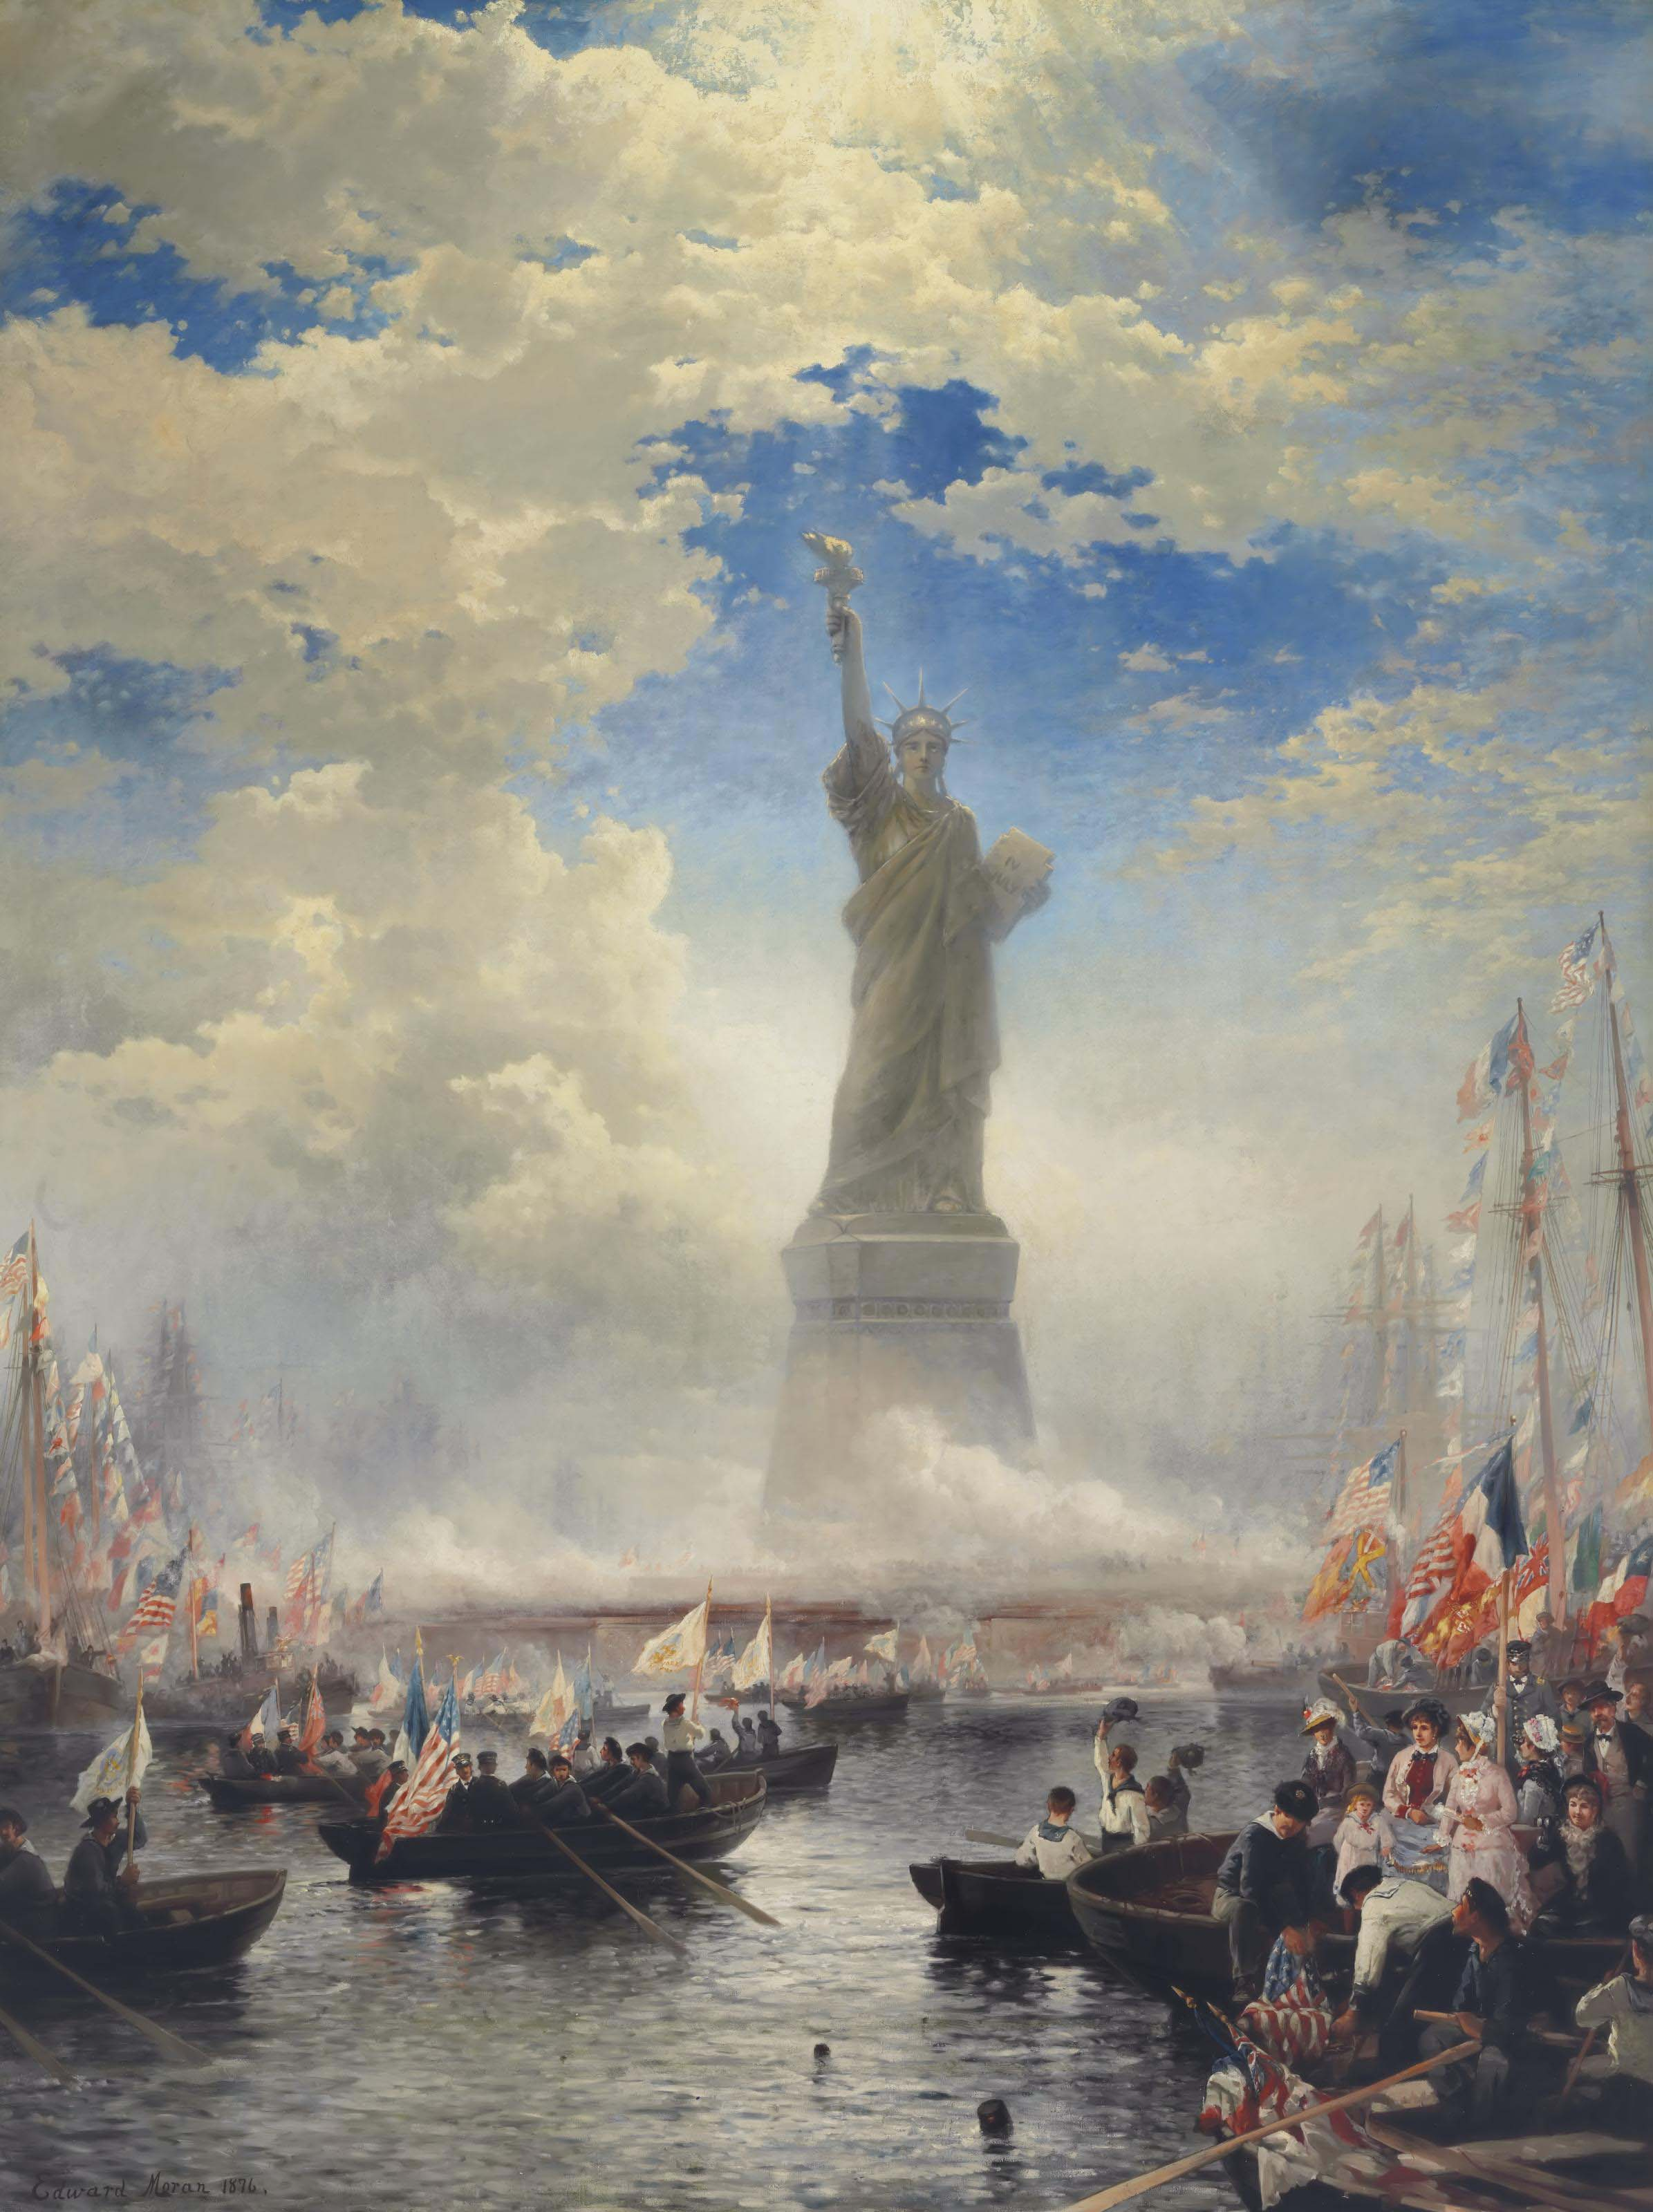 Commerce of Nations Rendering Homage to Liberty